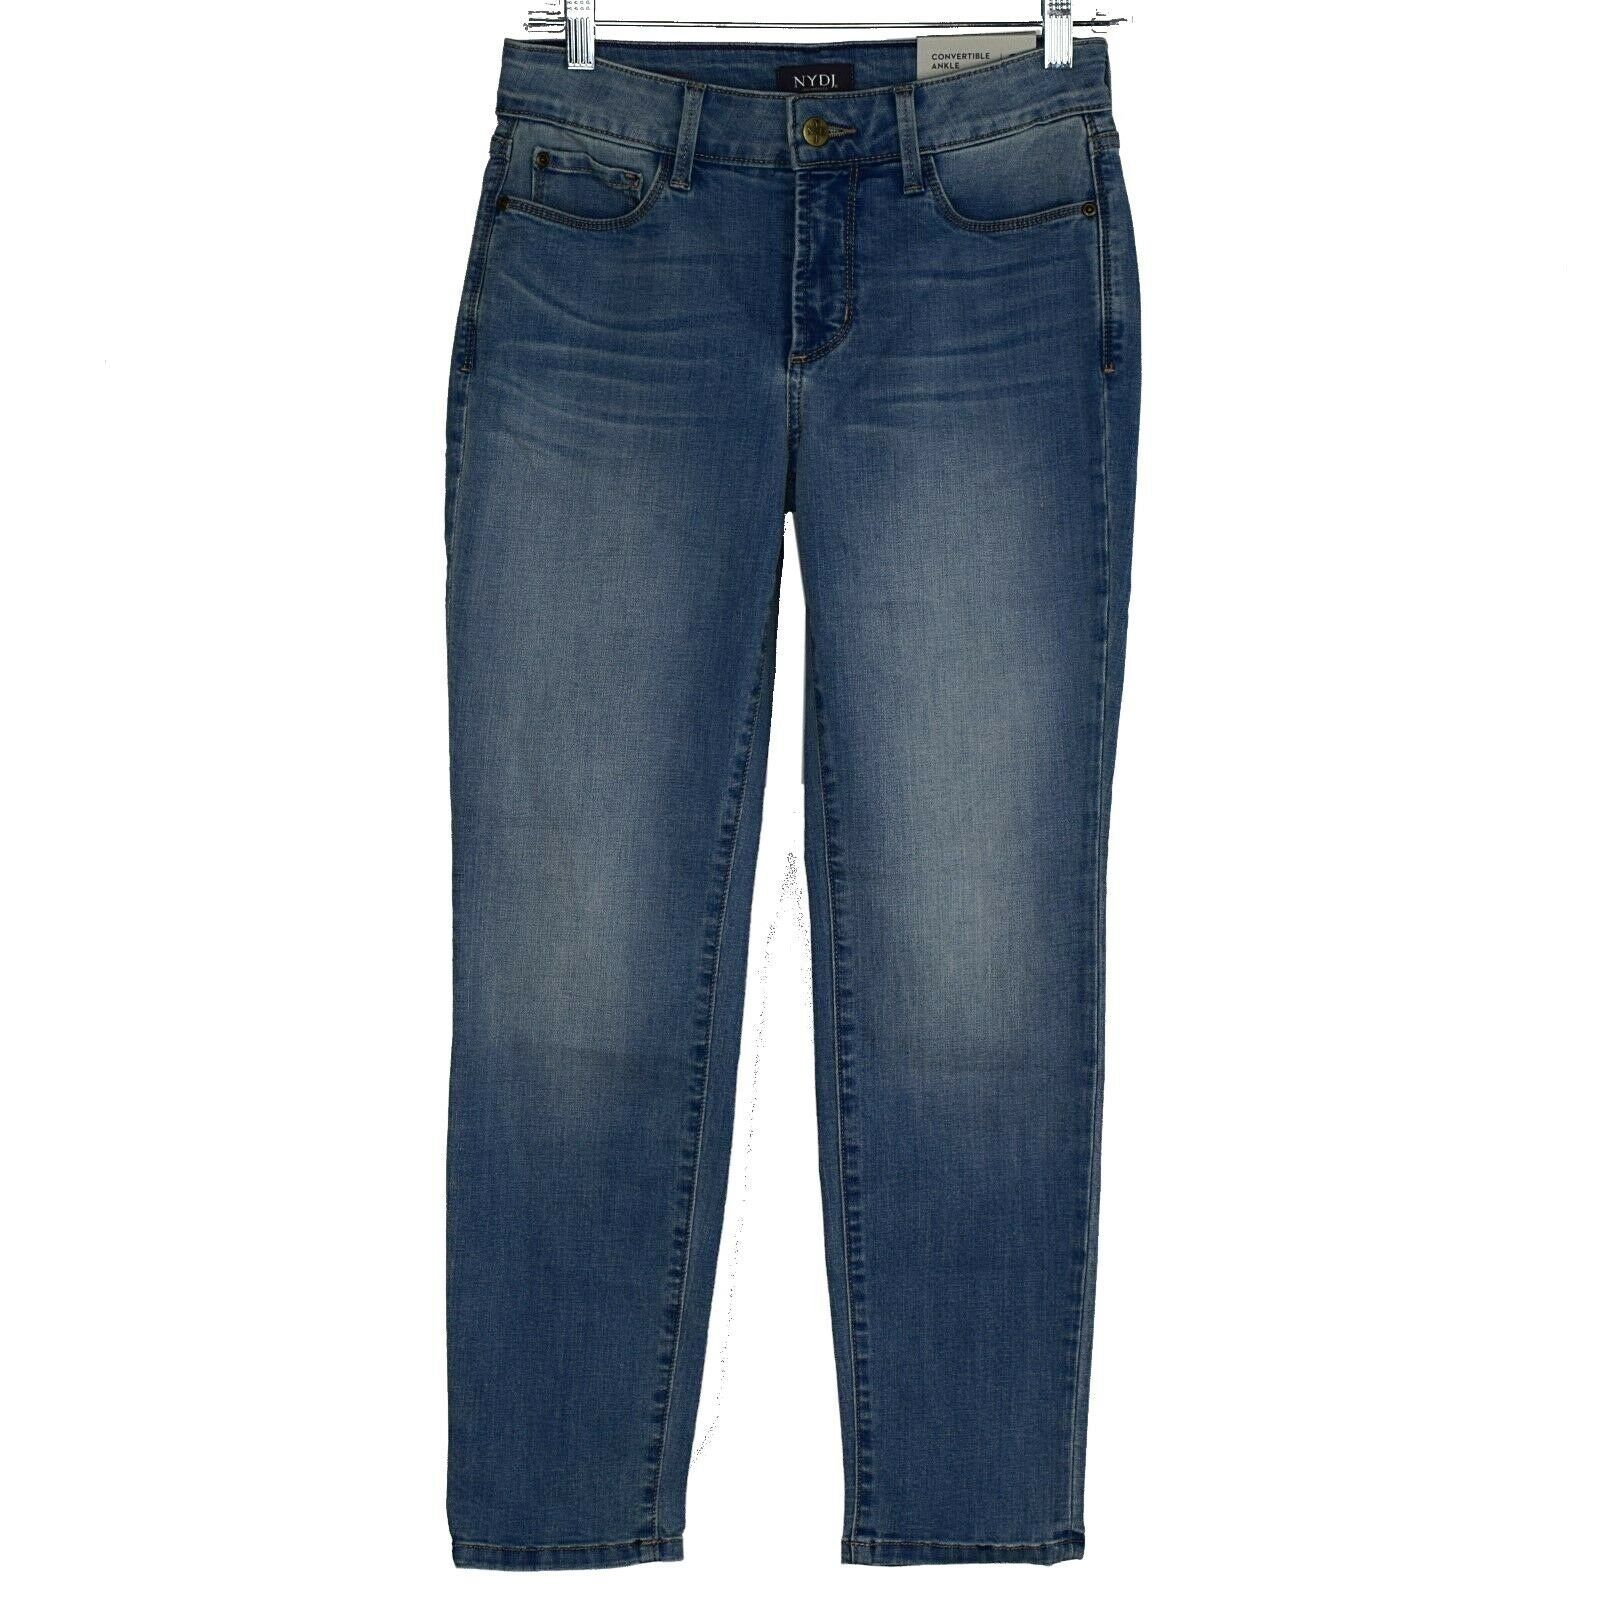 NYDJ Womens Petite Alina Skinny Congreenible Ankle Jeans Size 2P Light Wash NWT